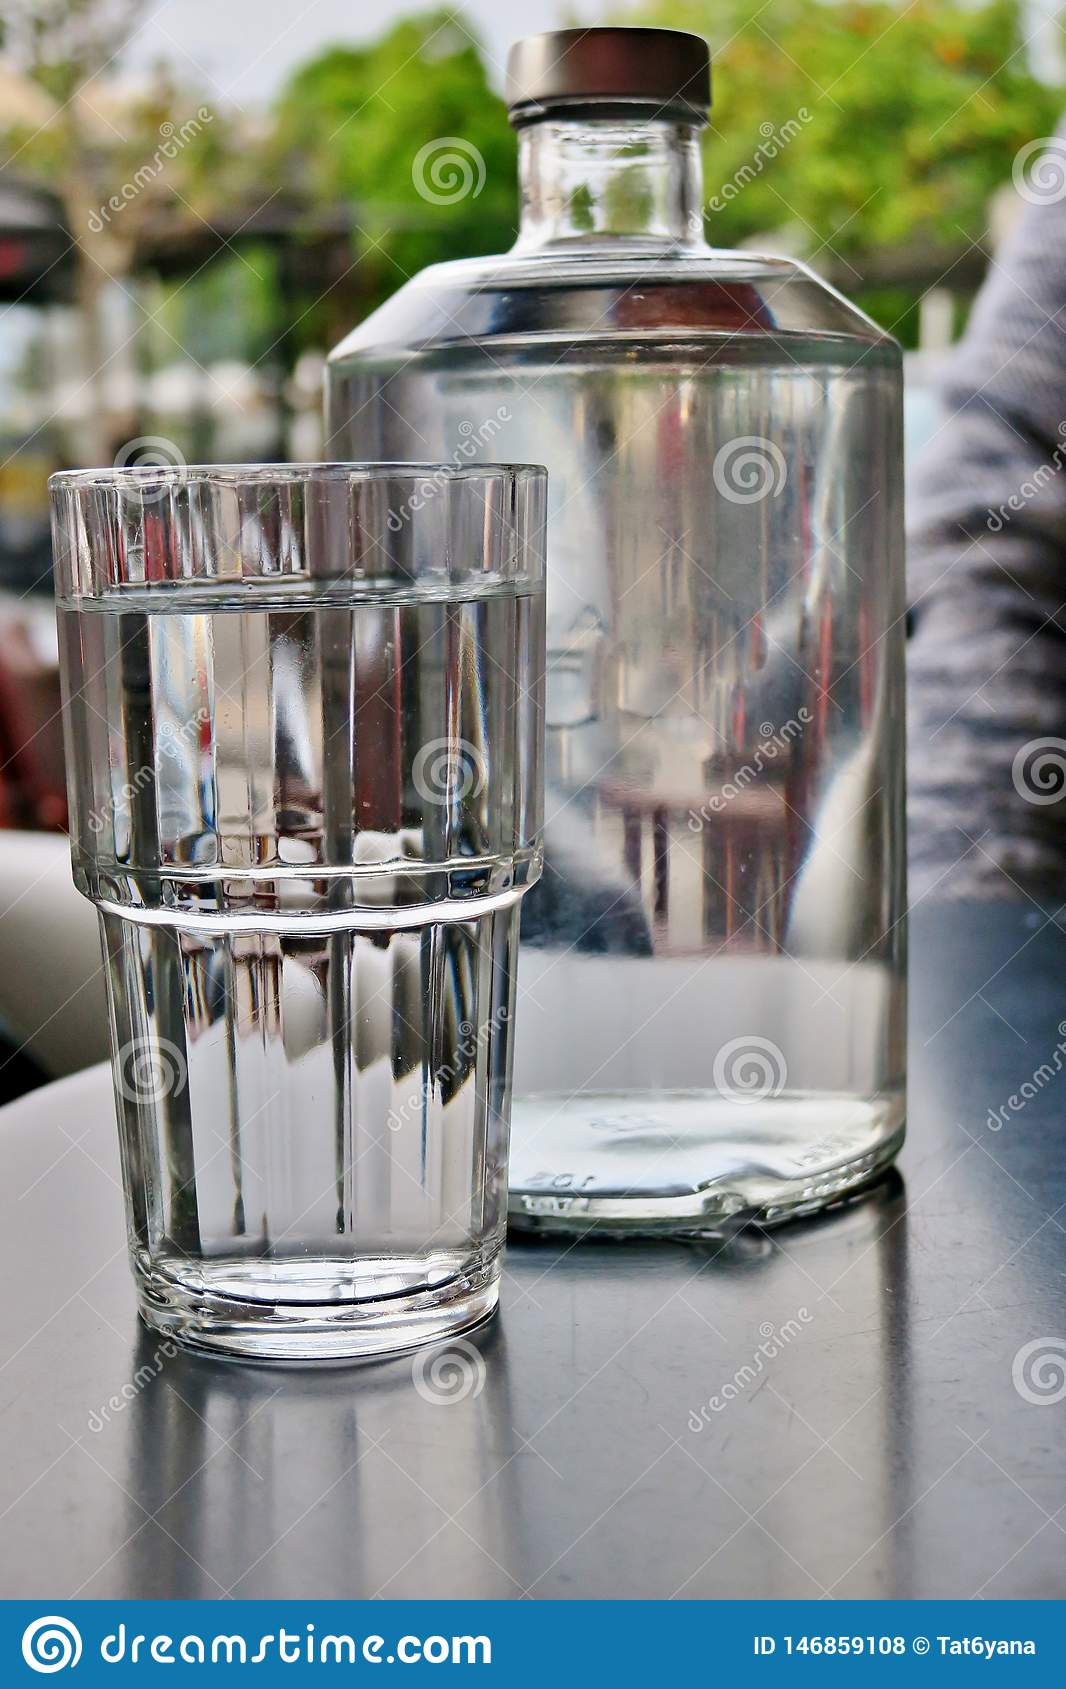 A large transparent bottle of water with a glass next, close-up